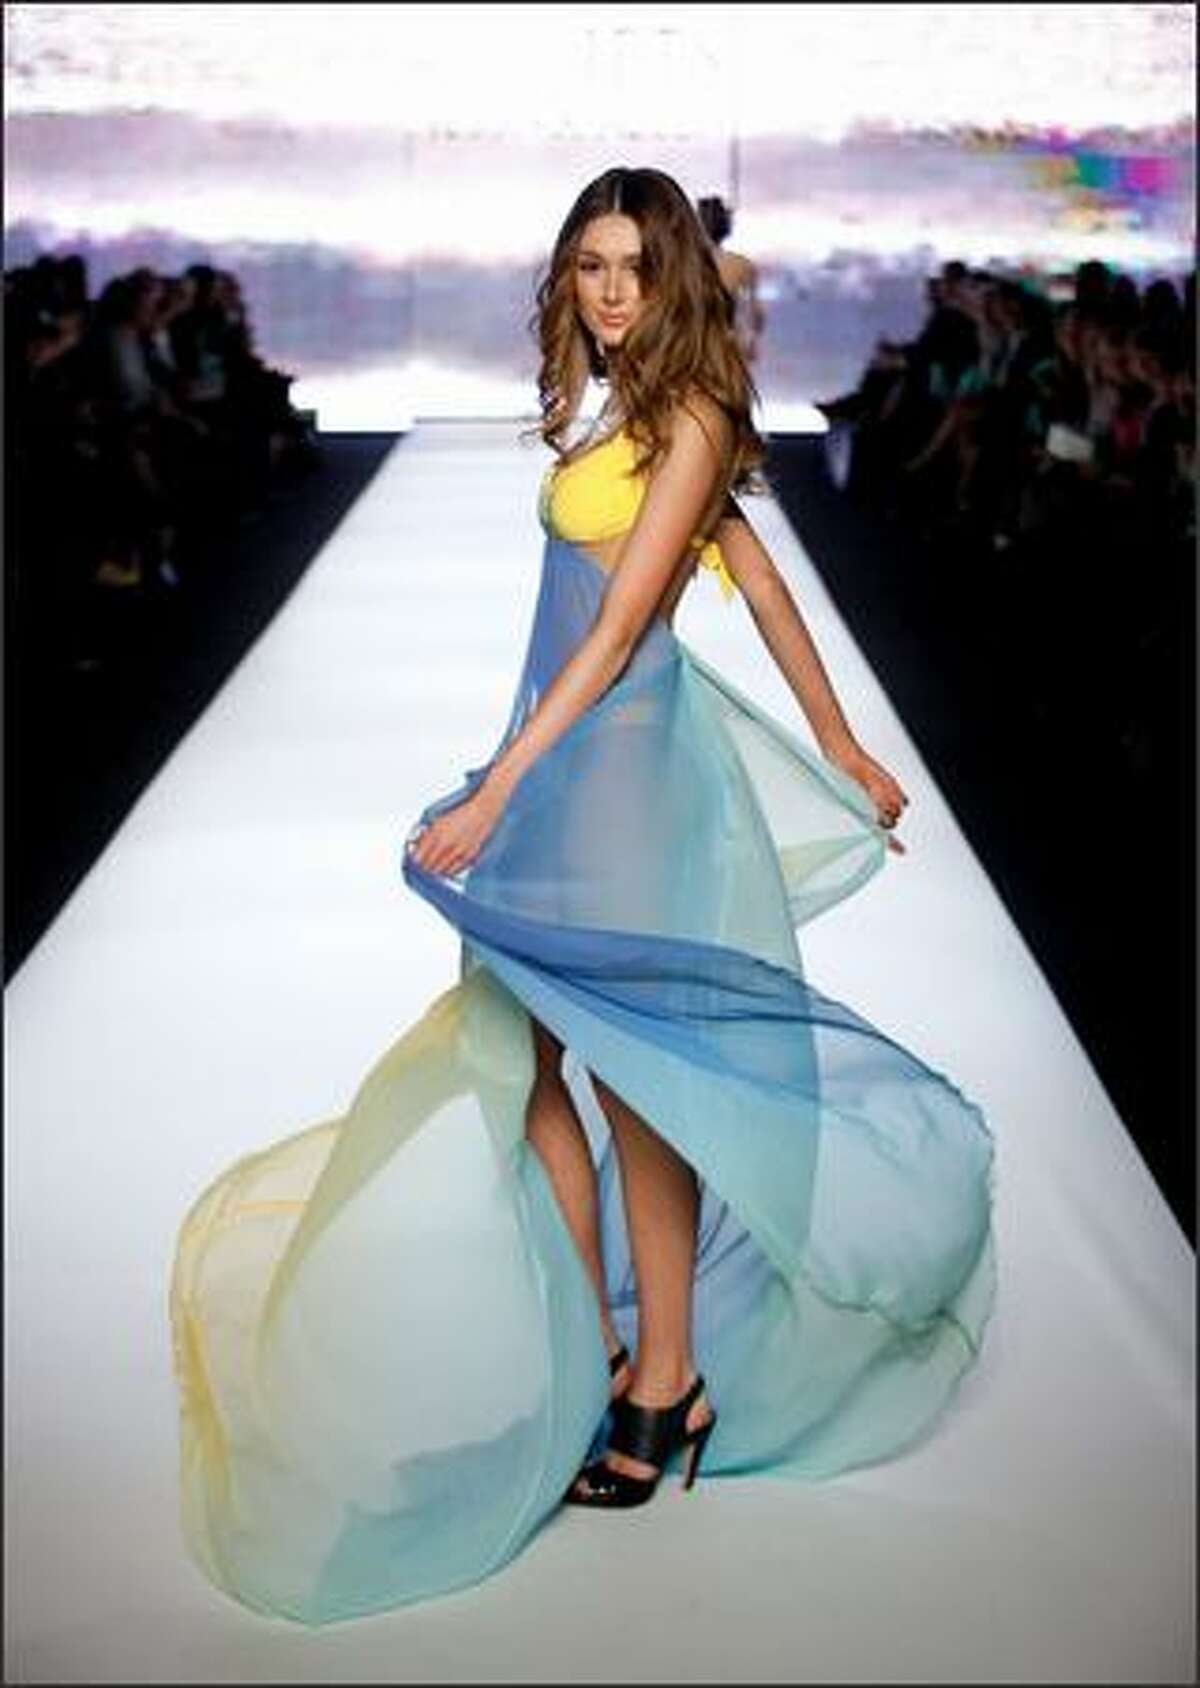 A model showcases Jets By Jessica Allen designs on the catwalk as part of the inaugural Rosemount Sydney Fashion Festival 2008 at Martin Place in Sydney, Australia.